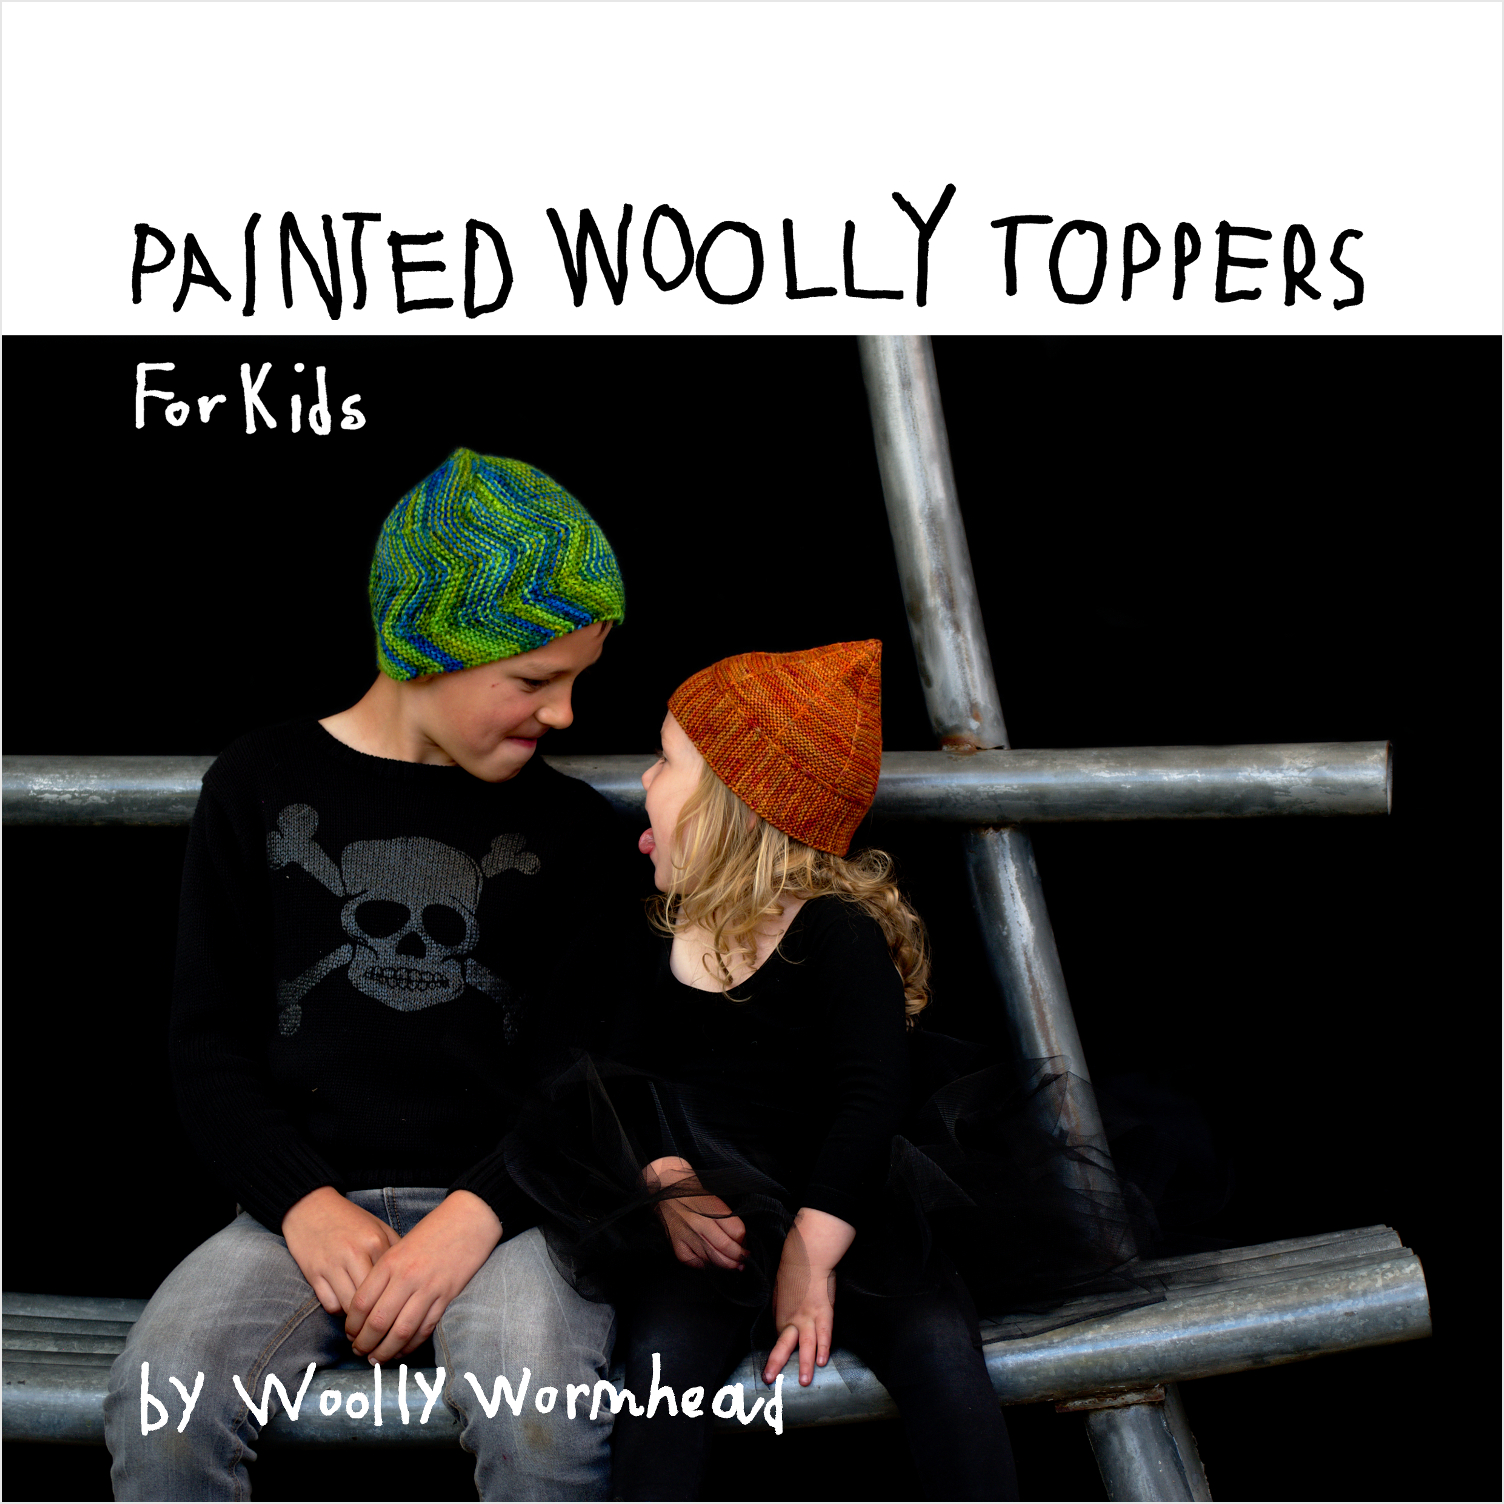 Painted Woolly Toppers cover